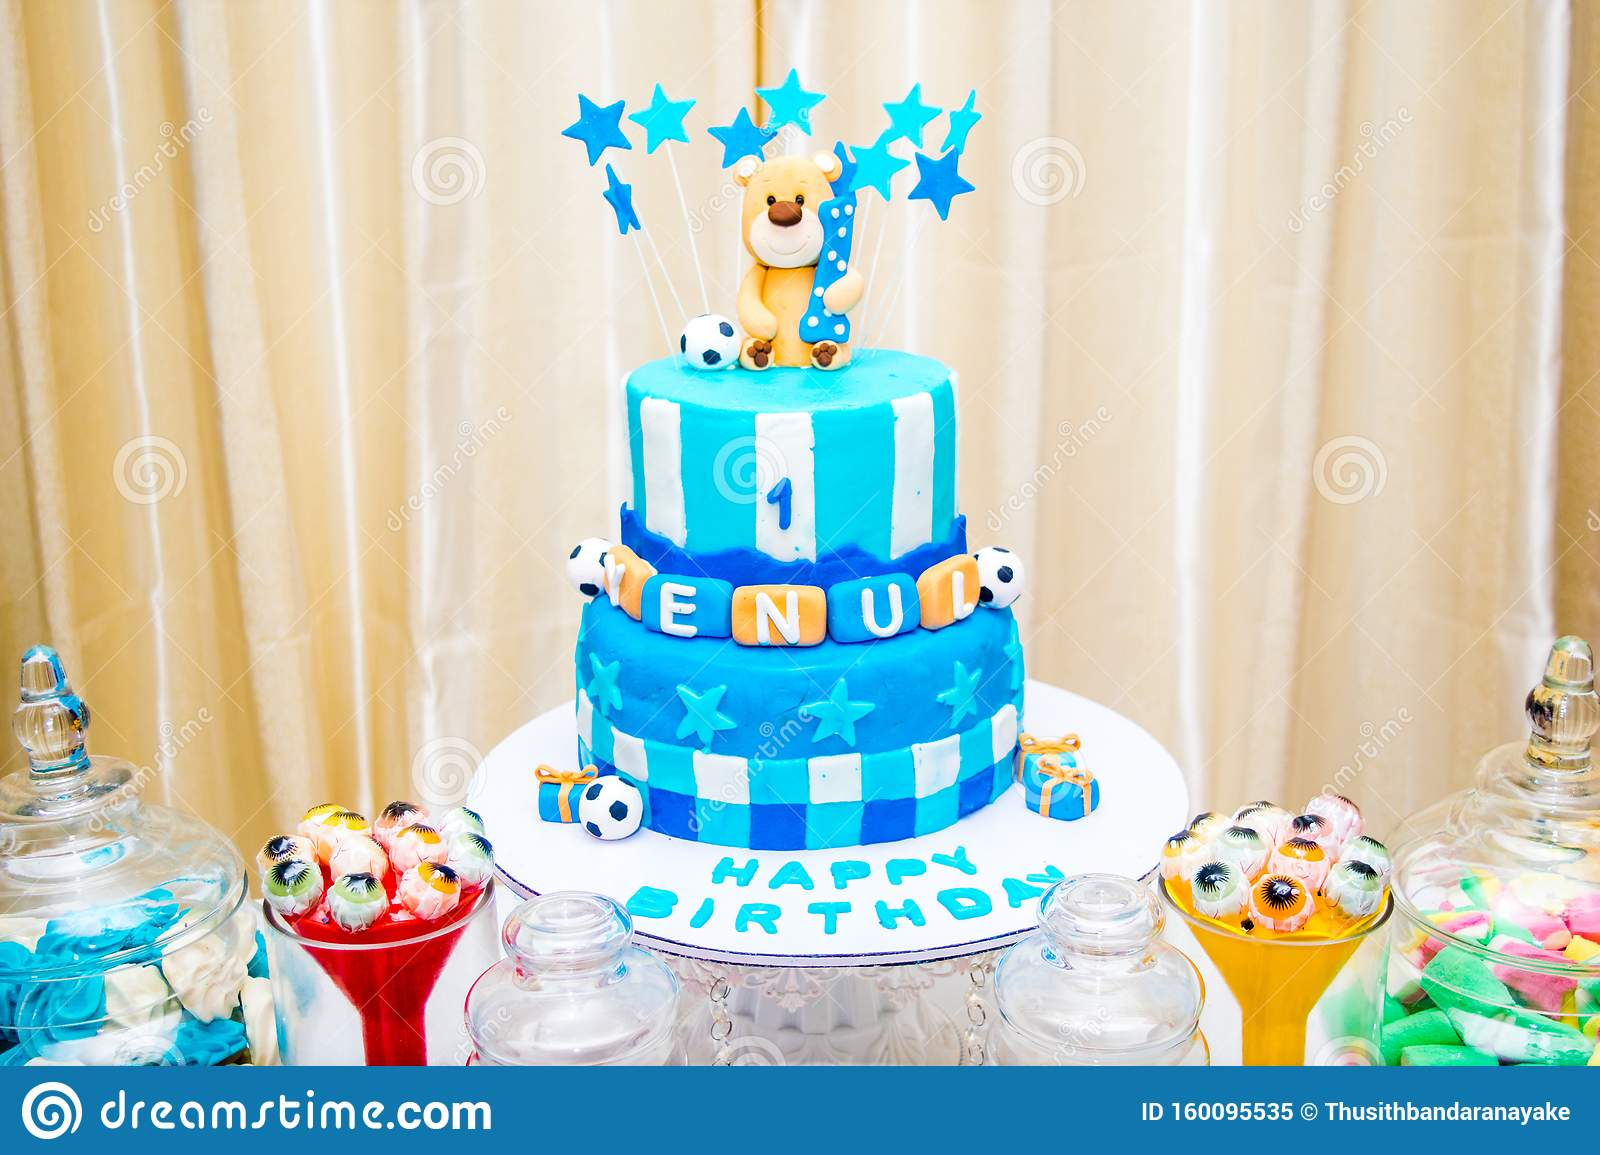 Happy Birthday Cake With Blue Theme Stock Image Image Of Designthis Boyunique 160095535